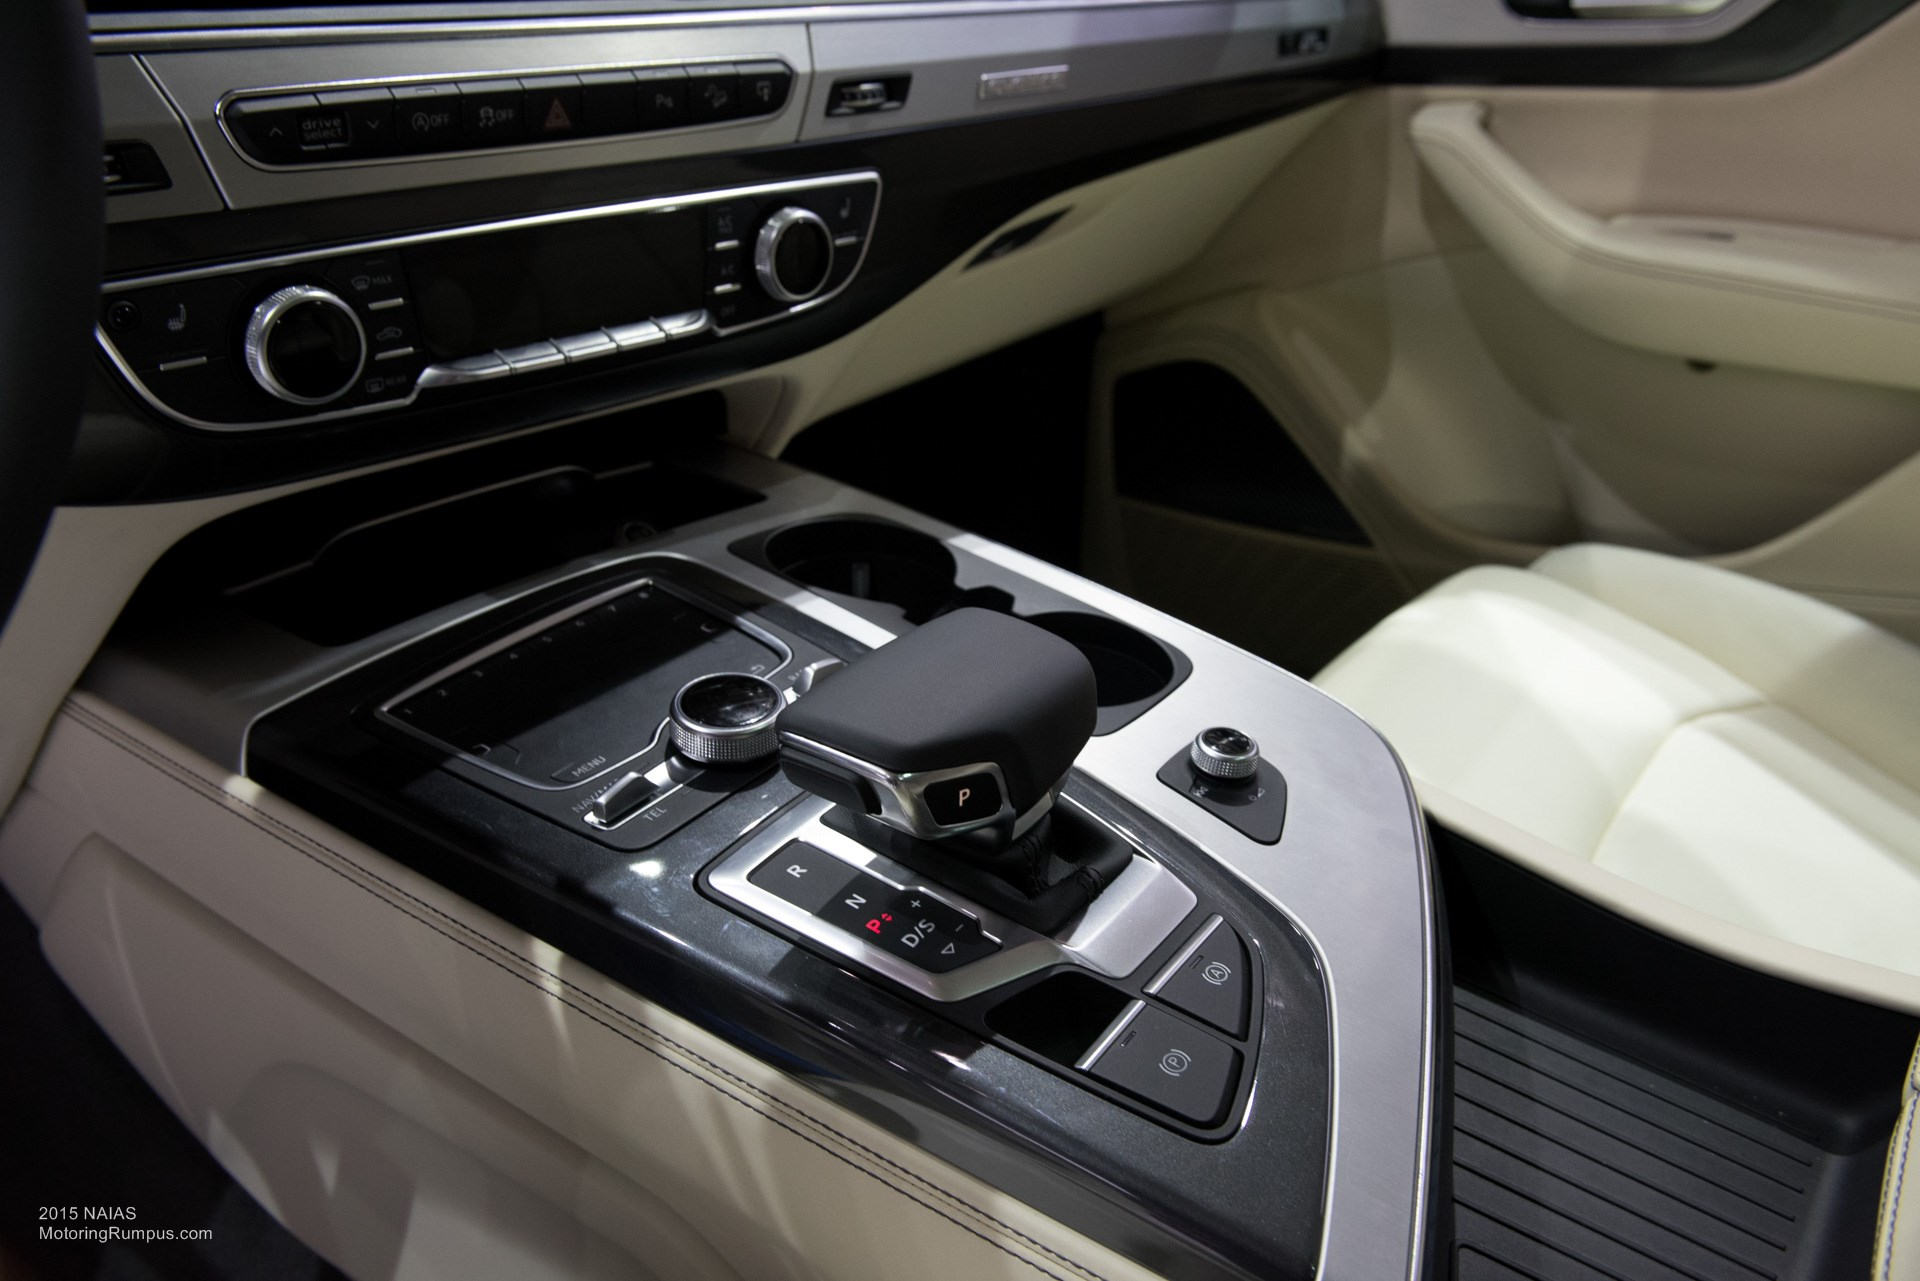 2015 NAIAS Audi Q7 Center Console - Motoring Rumpus